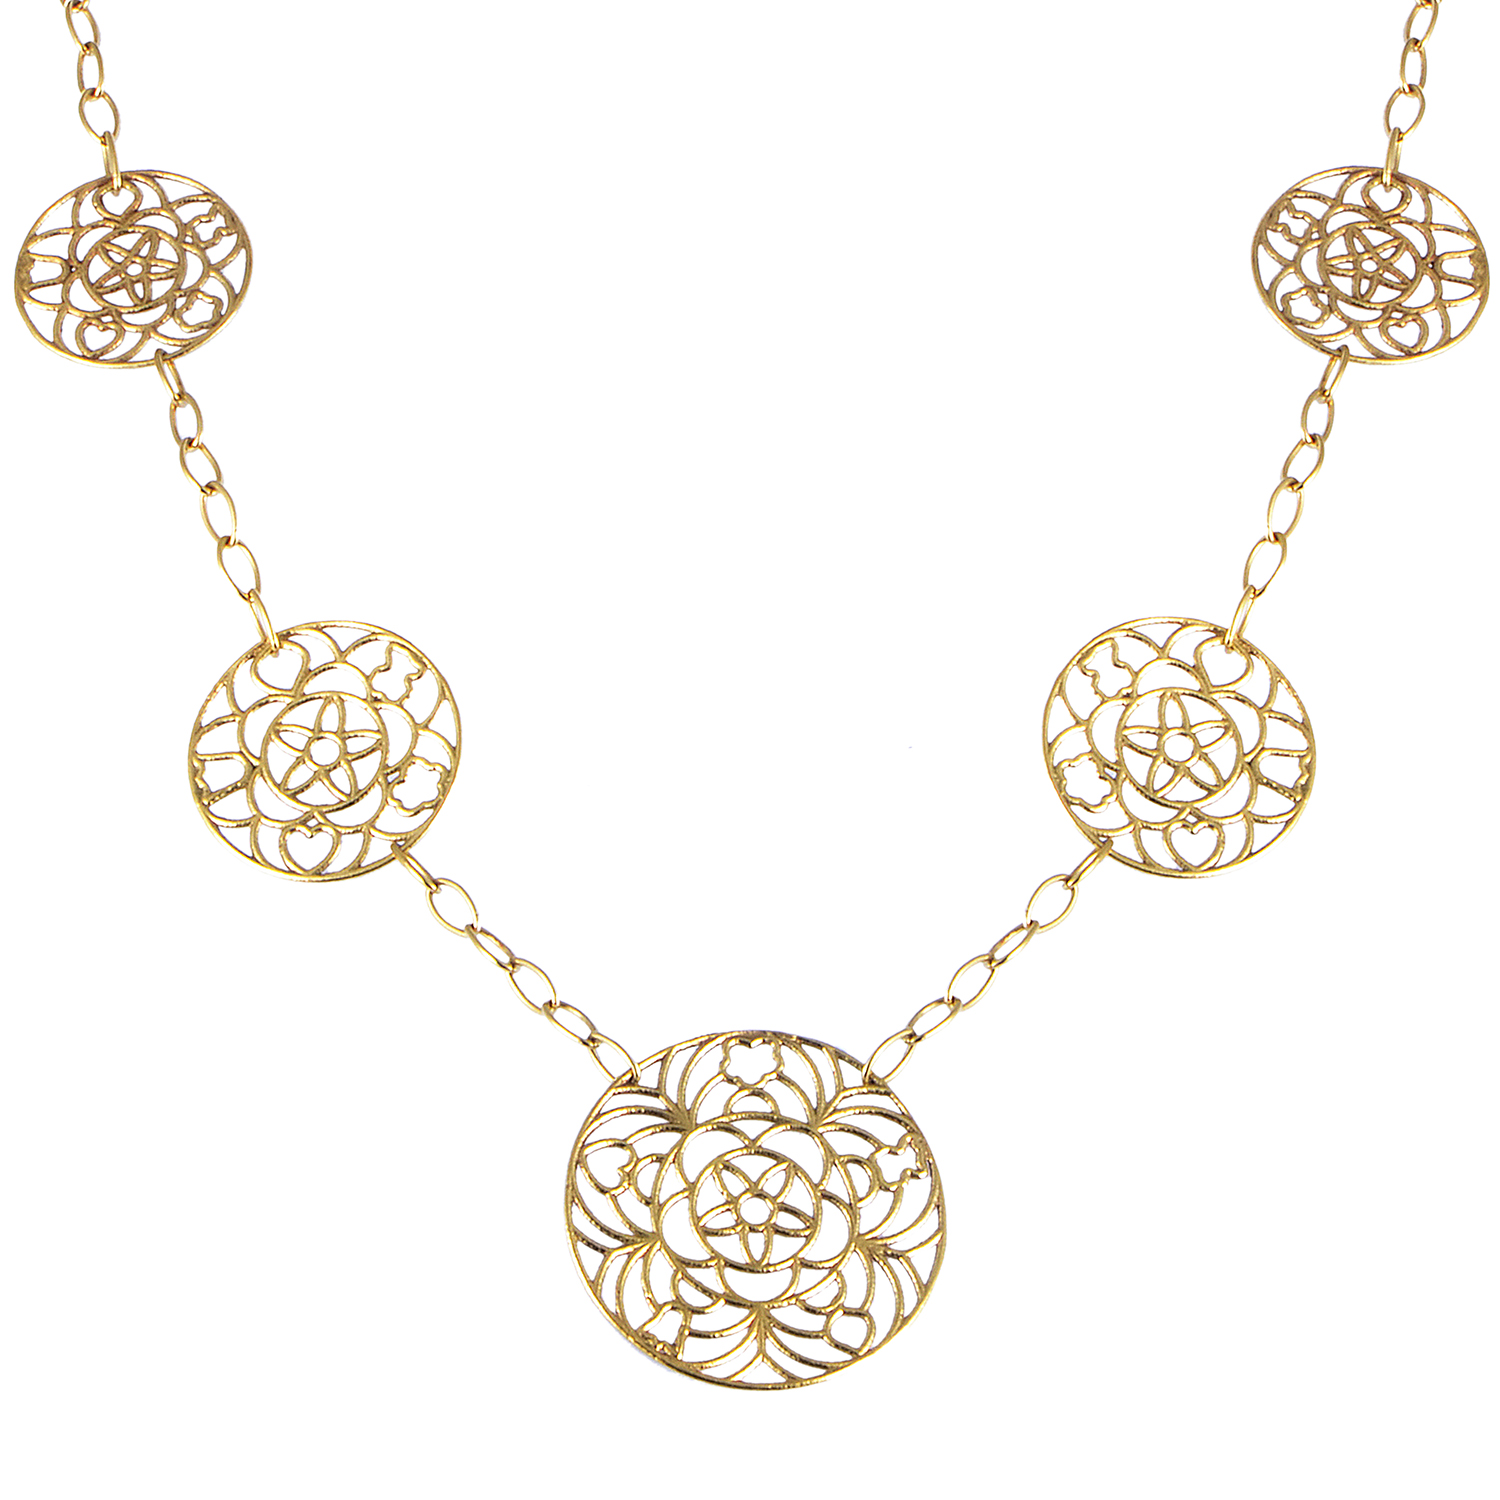 Tous Women's 18K Yellow Gold 5 Lace Disk Necklace MD0104587AB